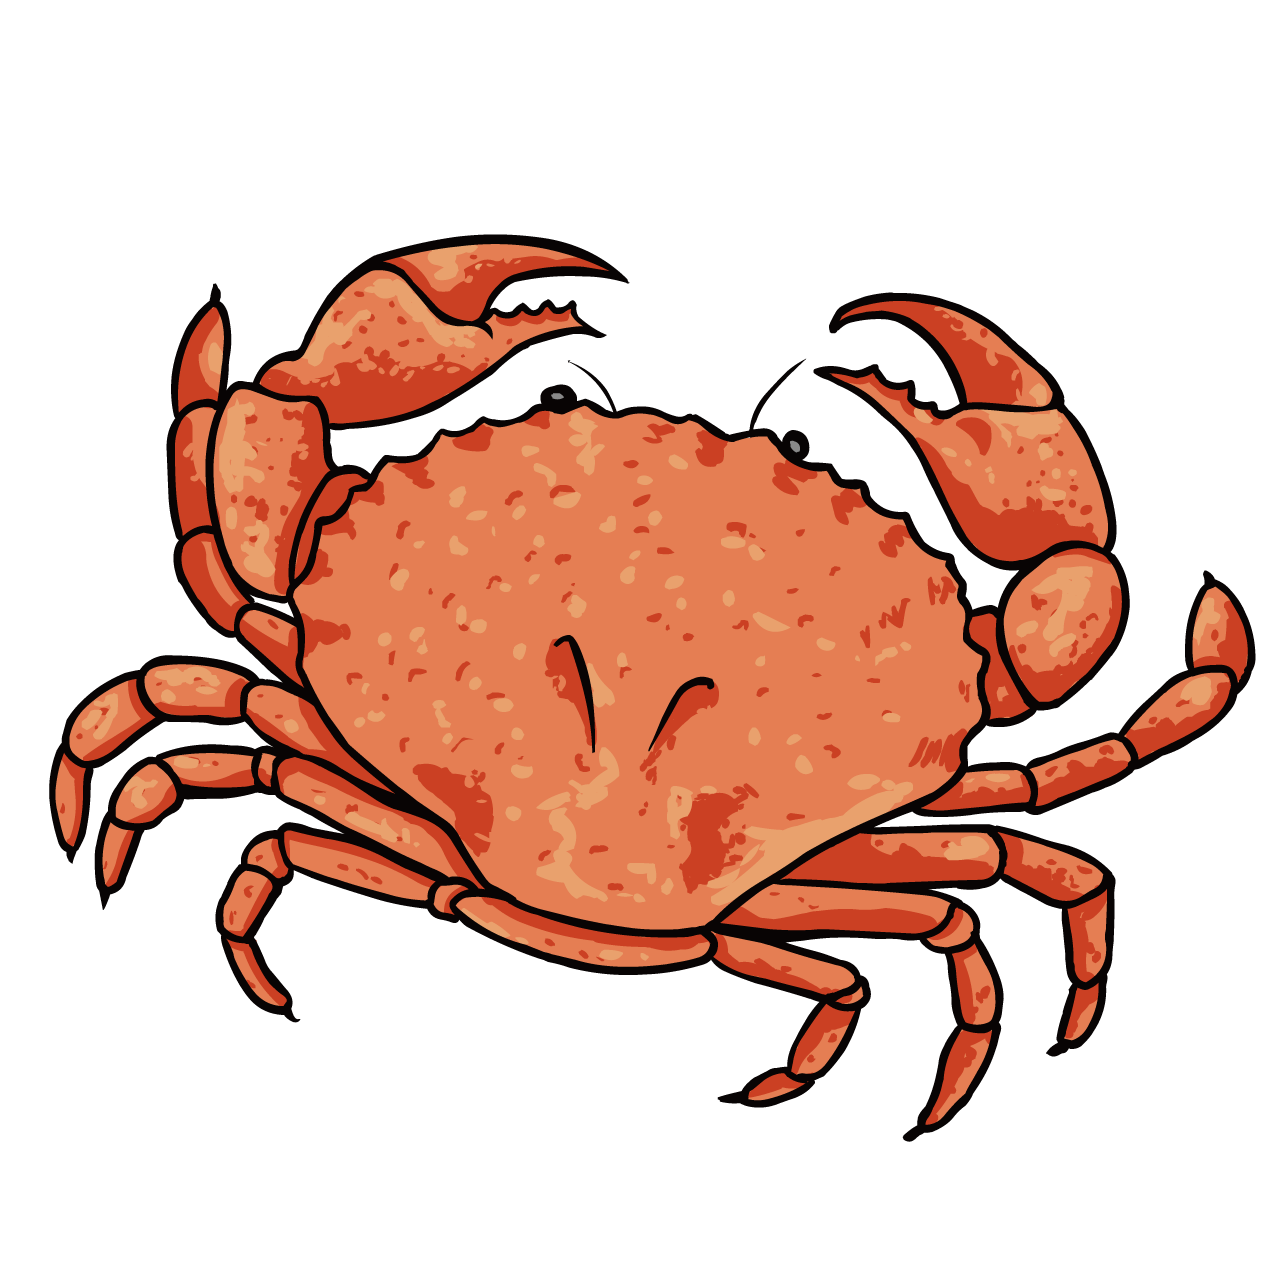 Dungeness lobster clip art. Seafood clipart king crab